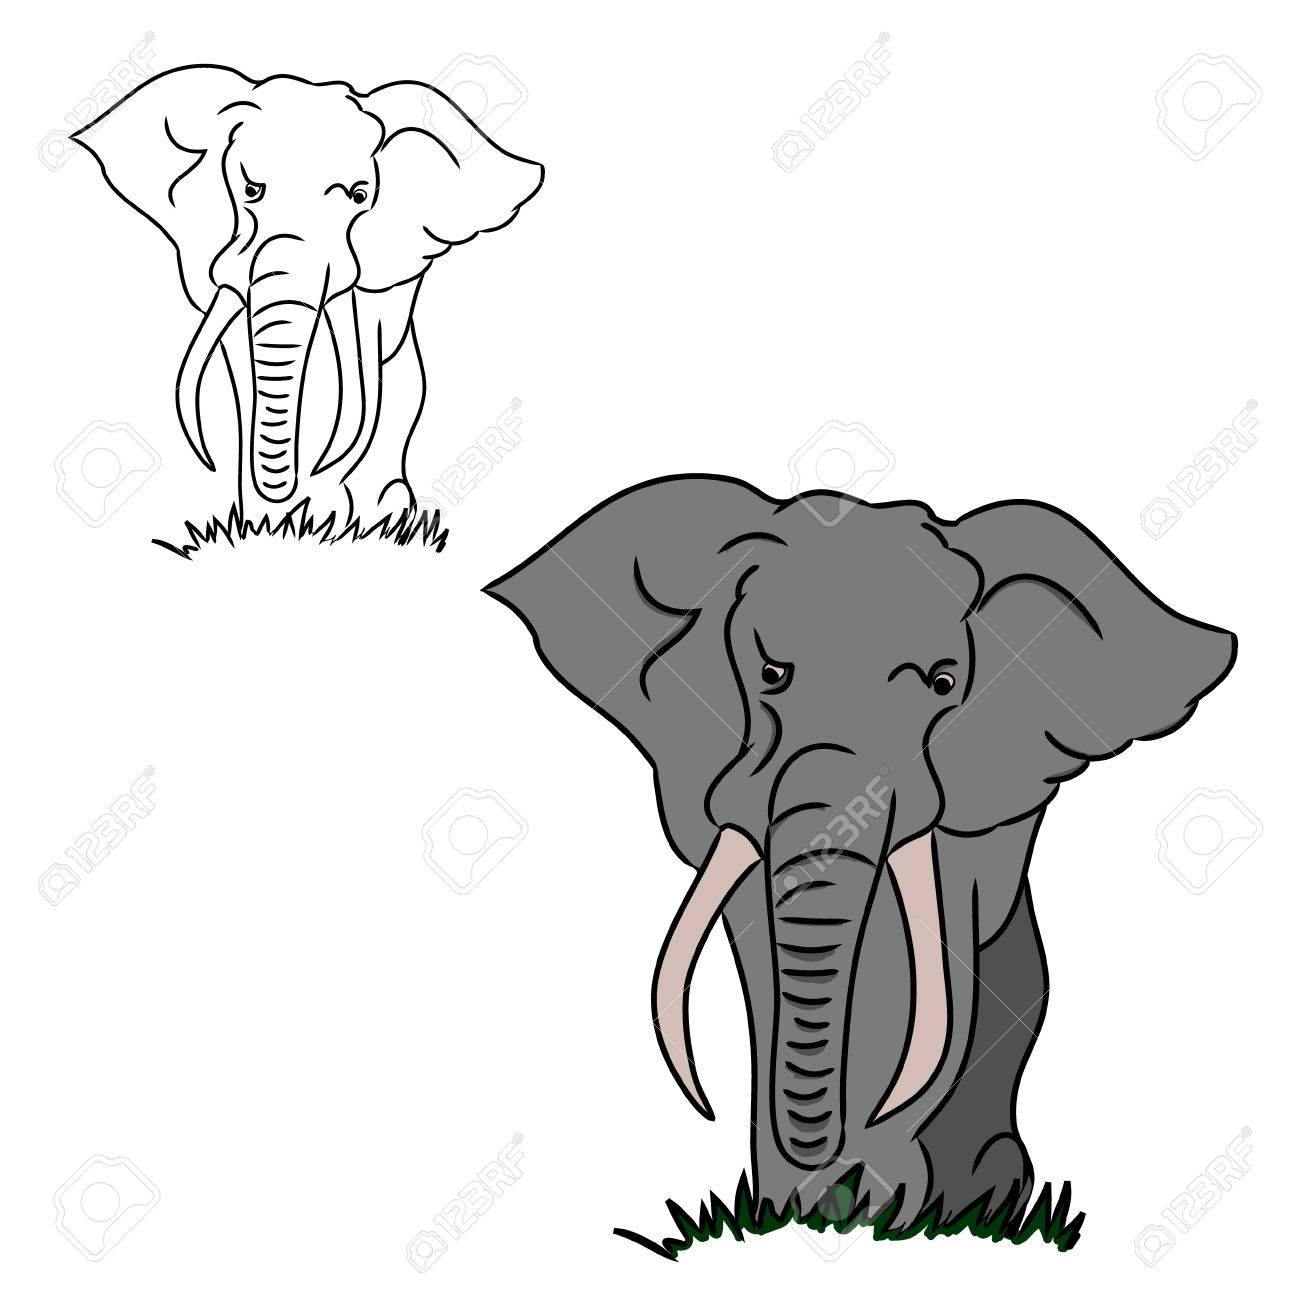 Two Circuits In The Form Of An Elephant. One Large Elephant ...